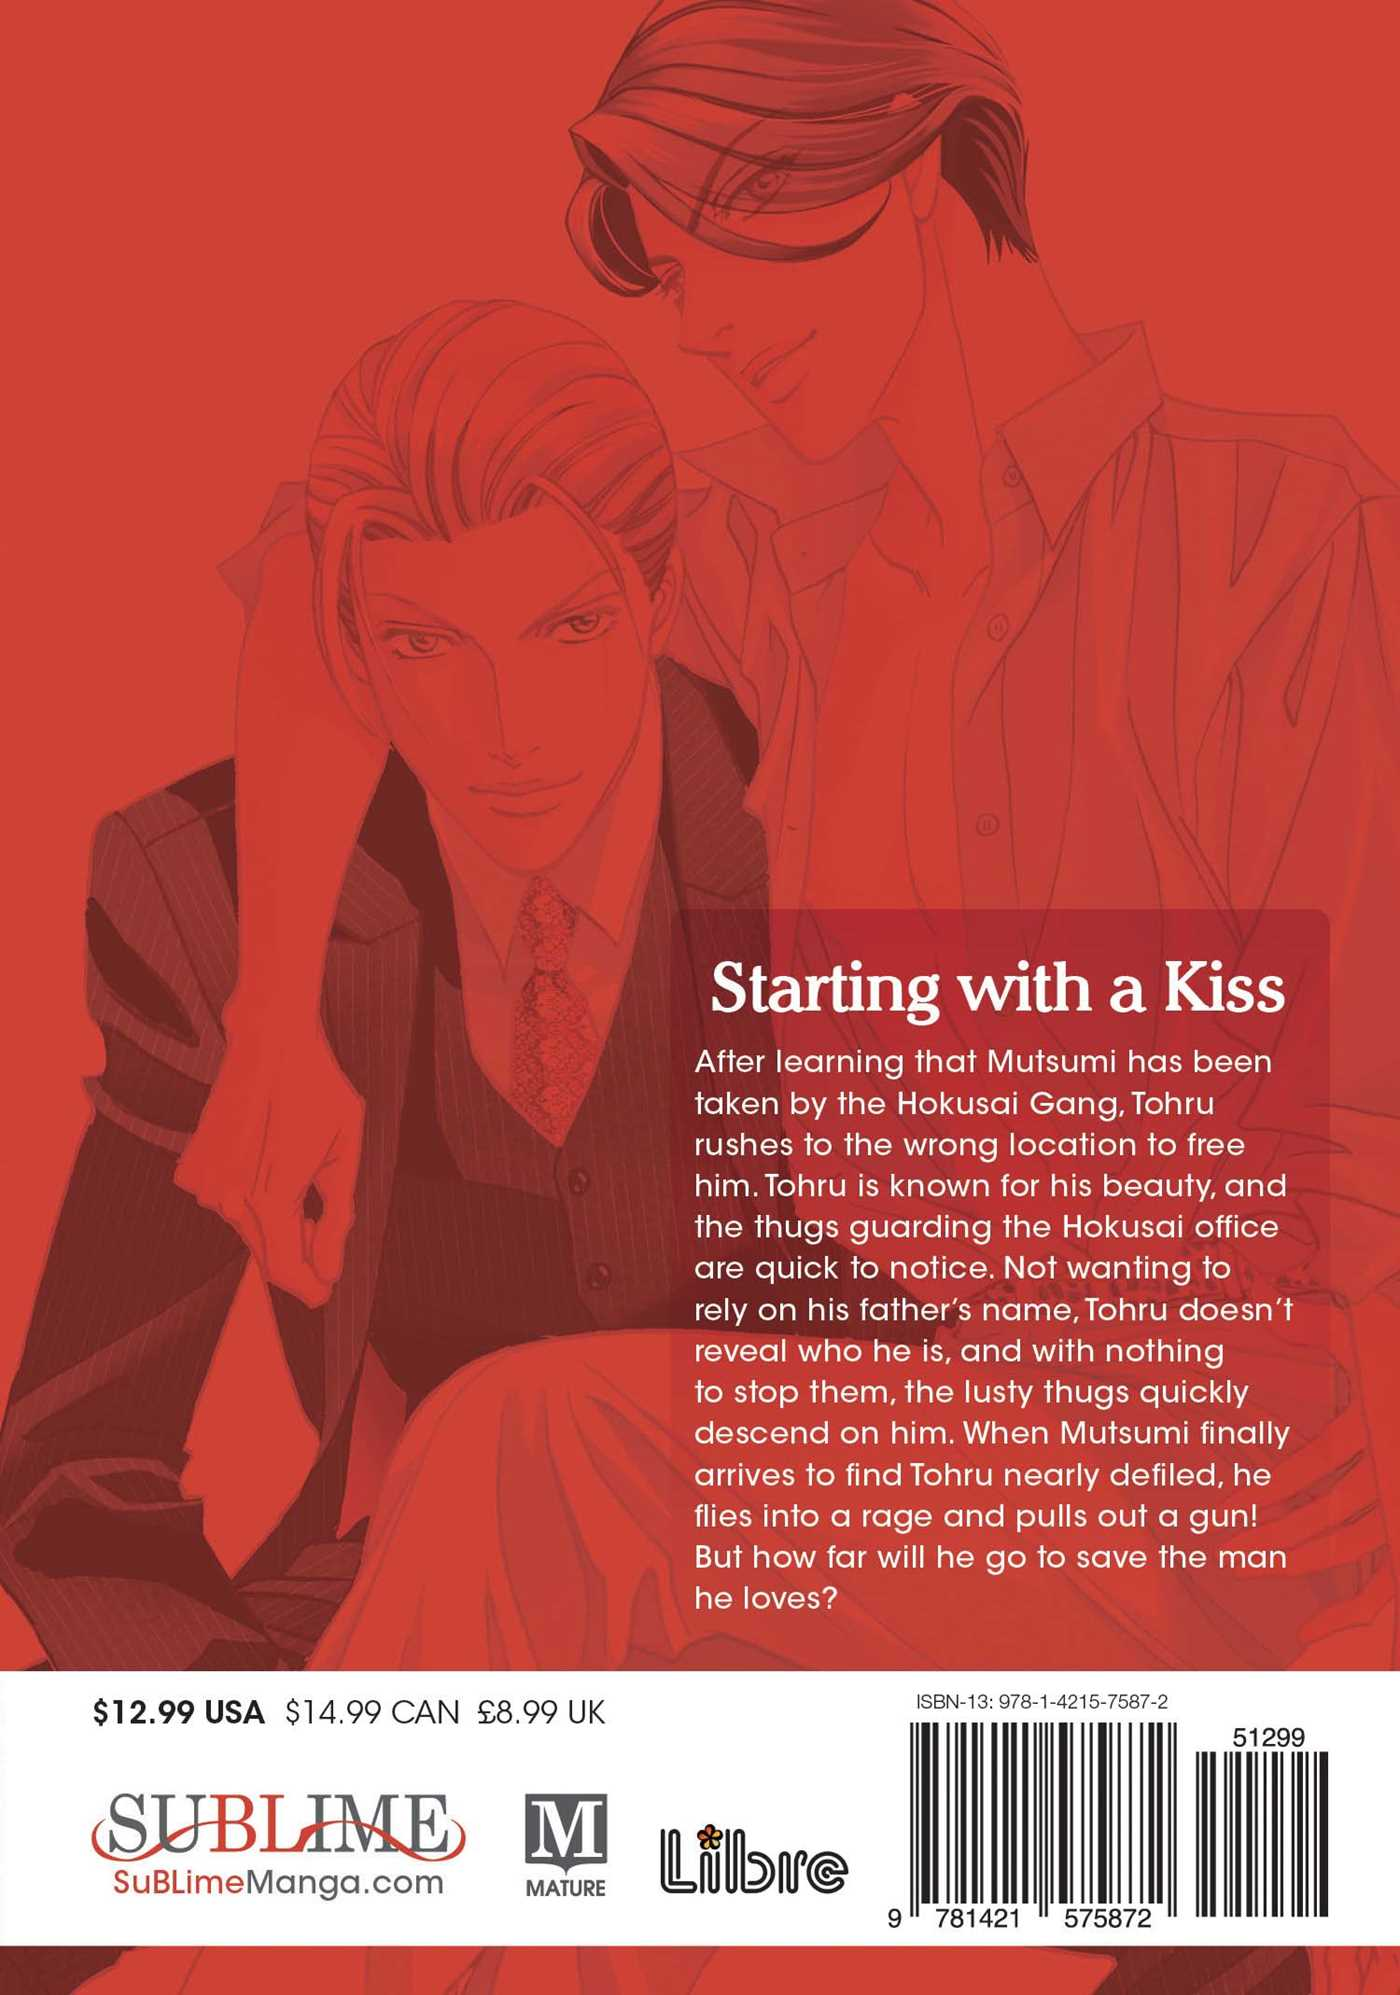 Starting with a kiss vol 3 9781421575872 hr back